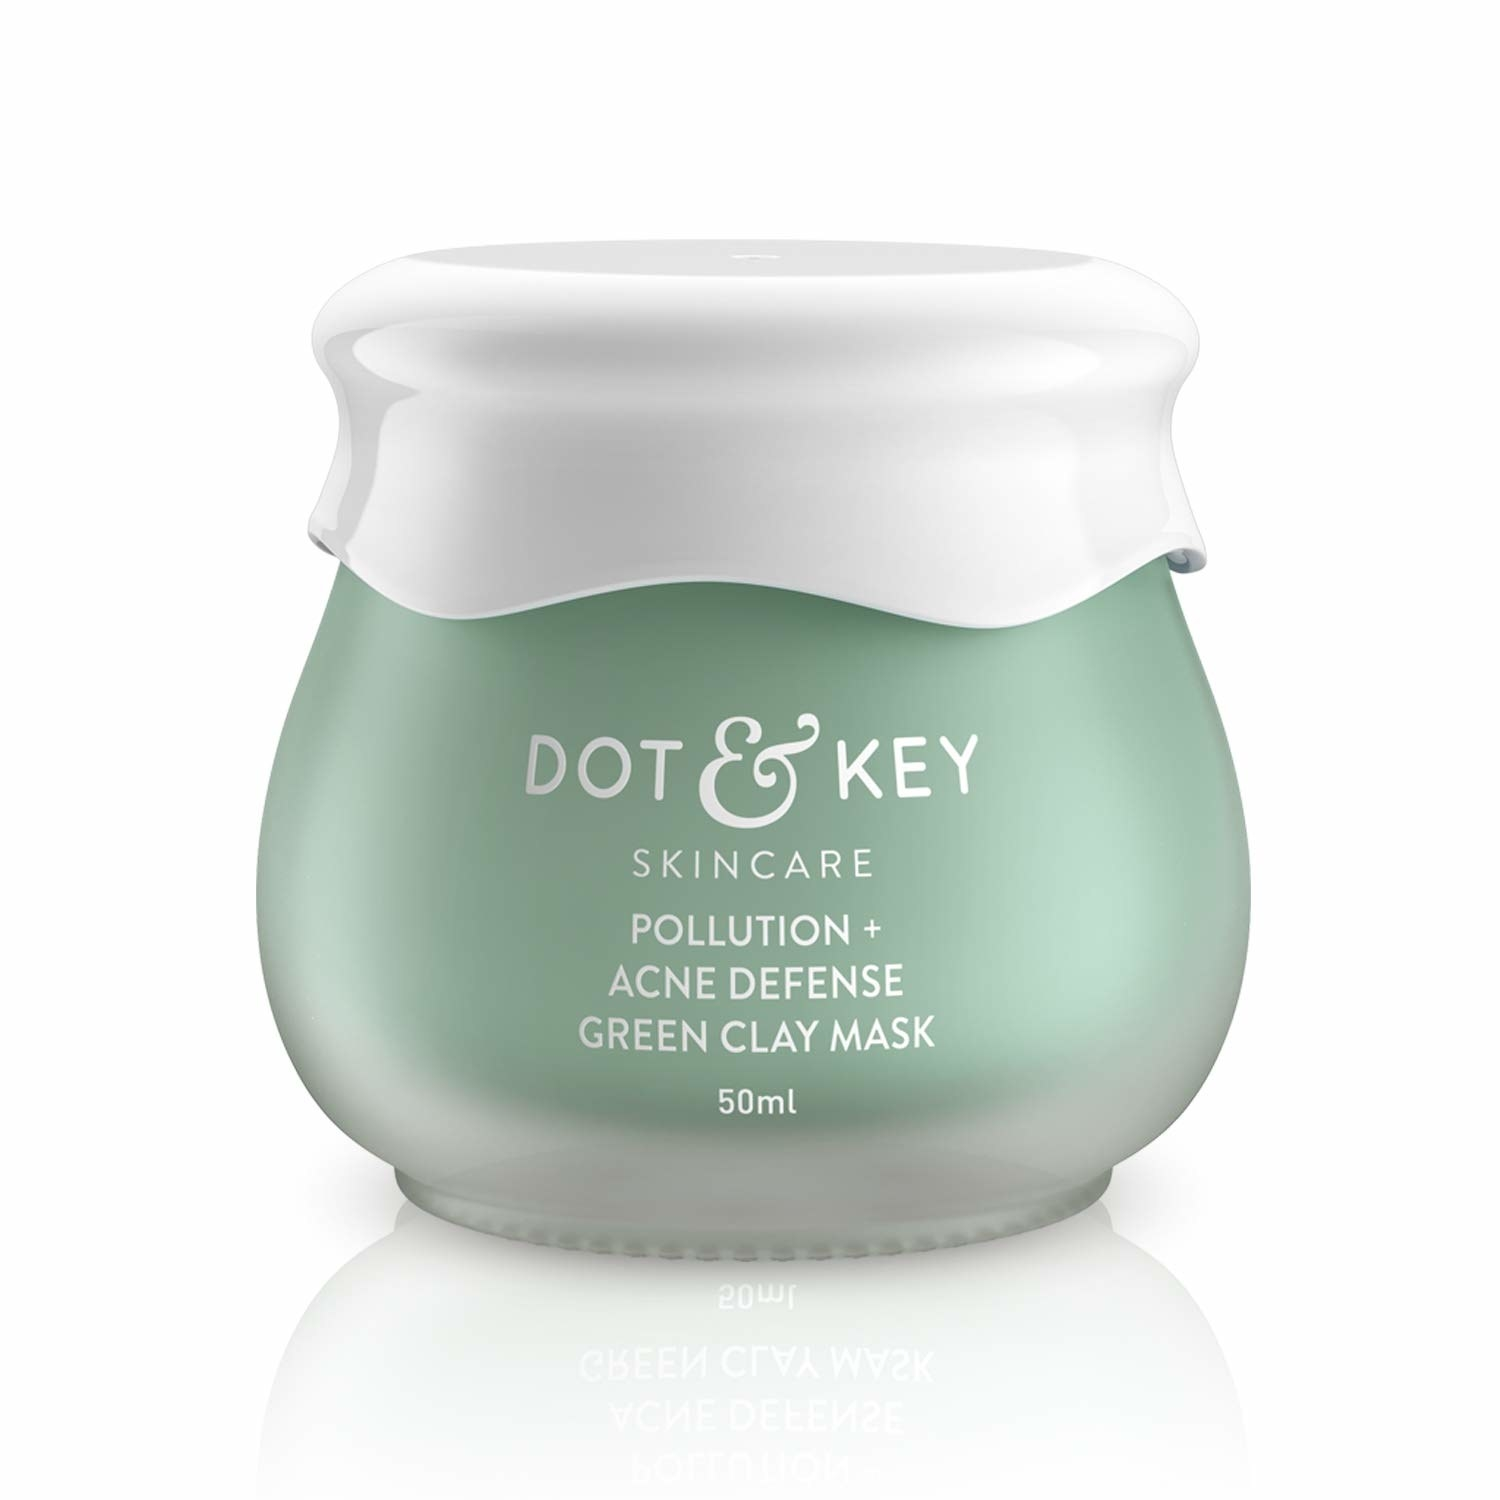 Green clay facemask packaging